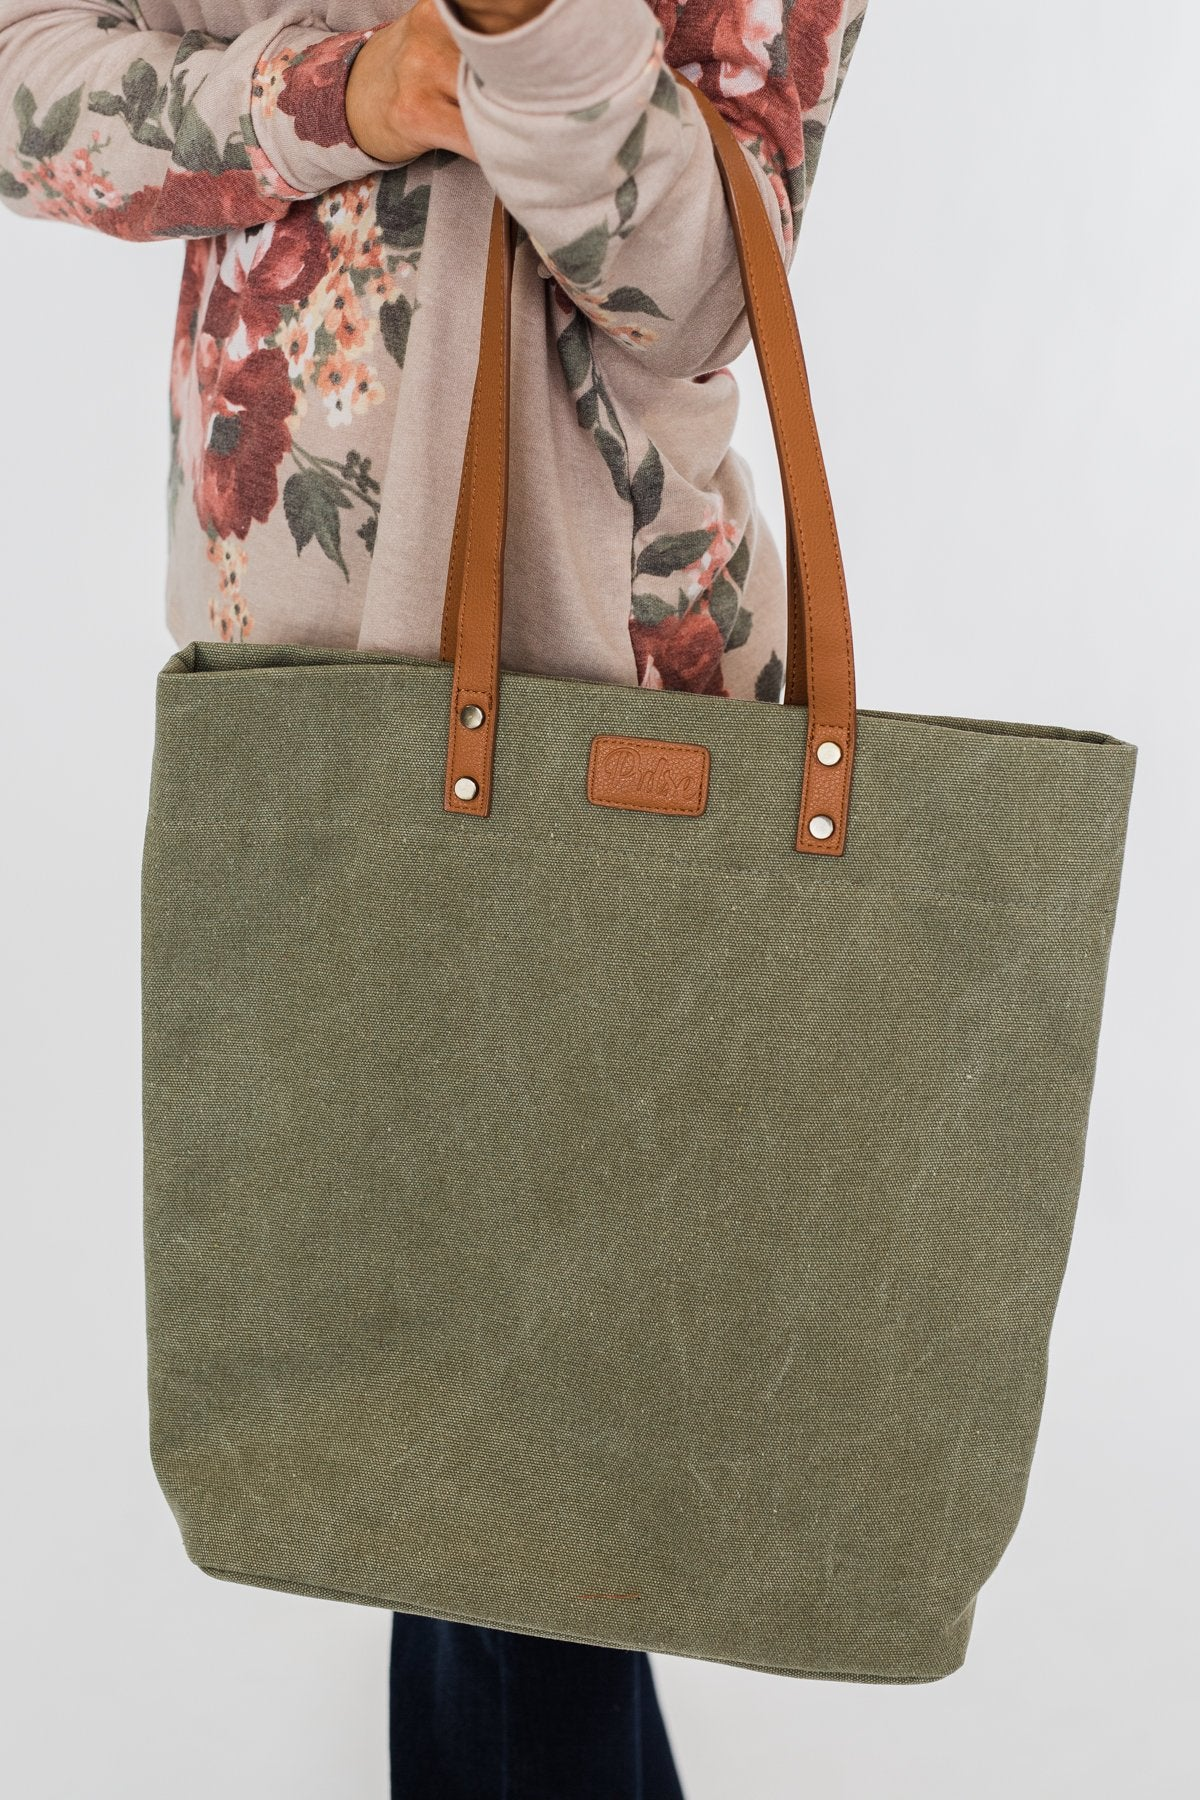 Life's Adventures Canvas Tote- Olive